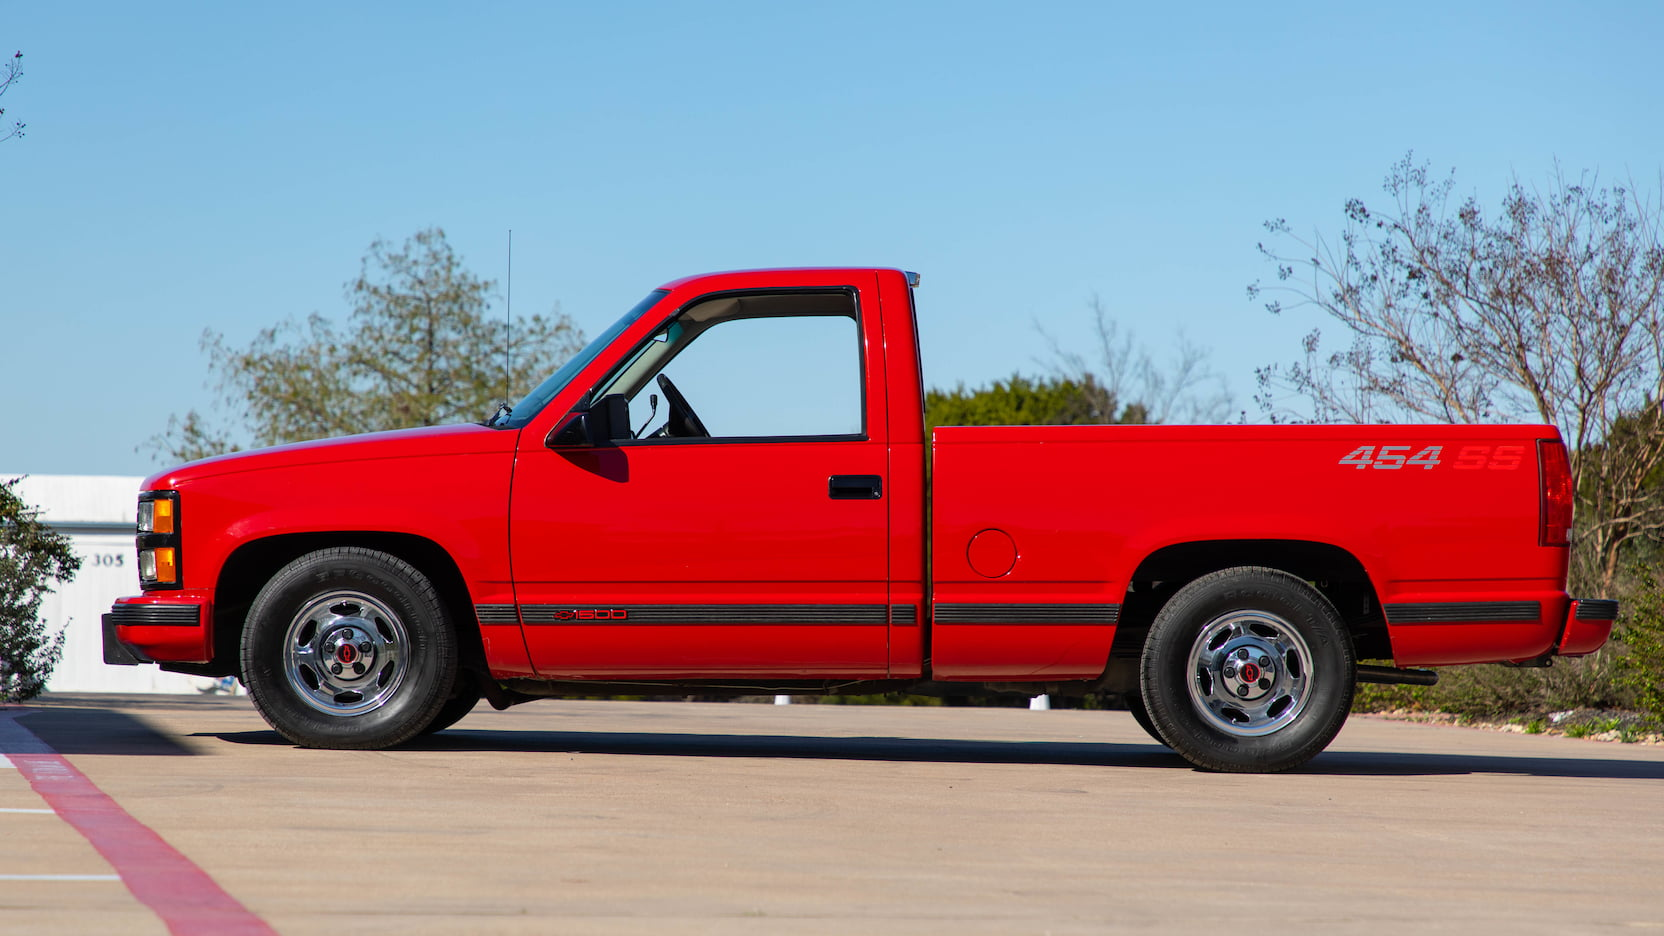 1993 Chevrolet 454 SS profile